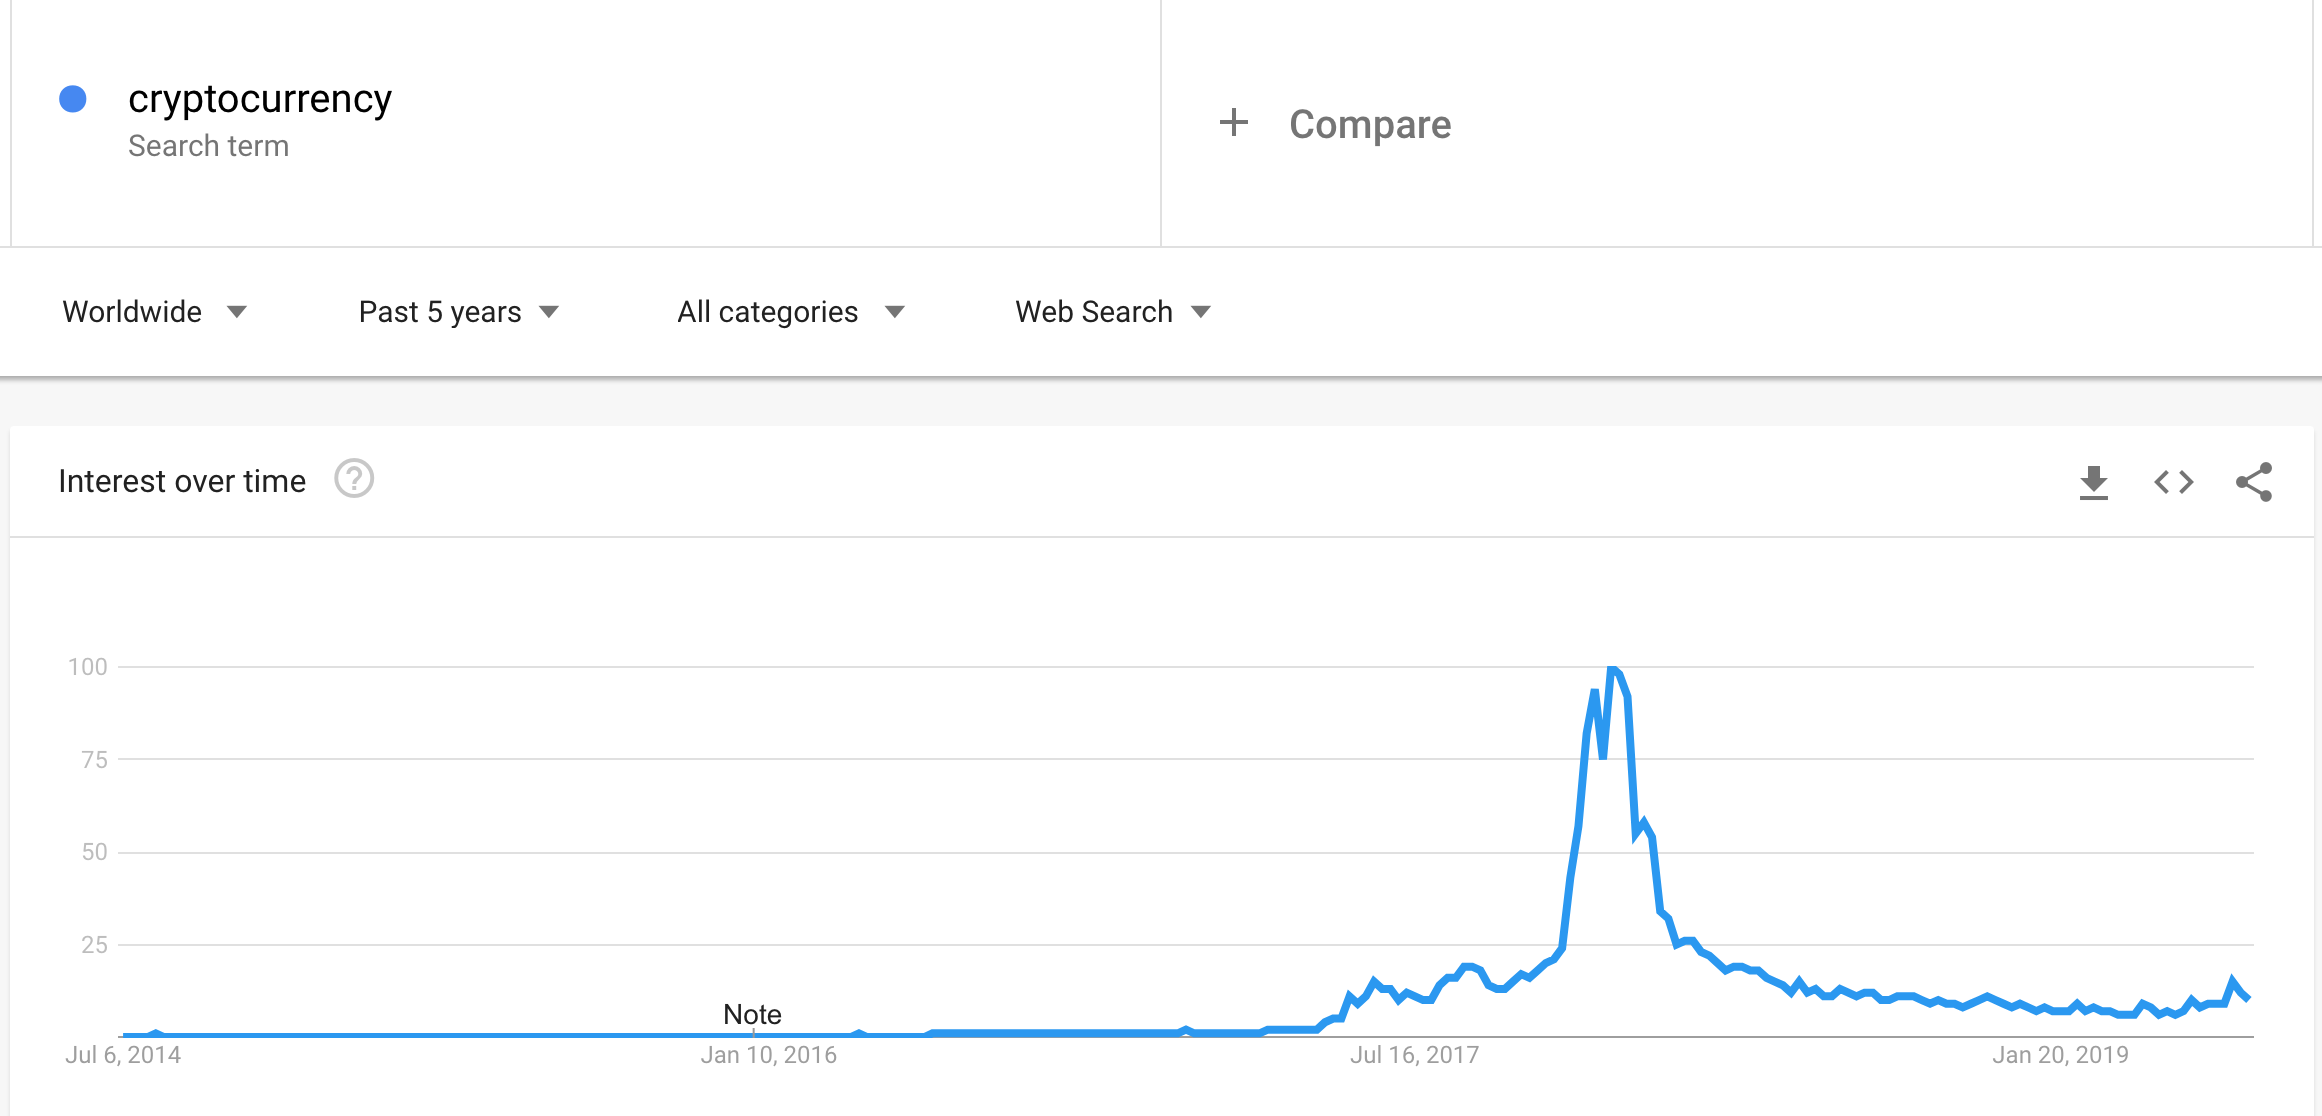 Cryptocurrency searches on Google over time